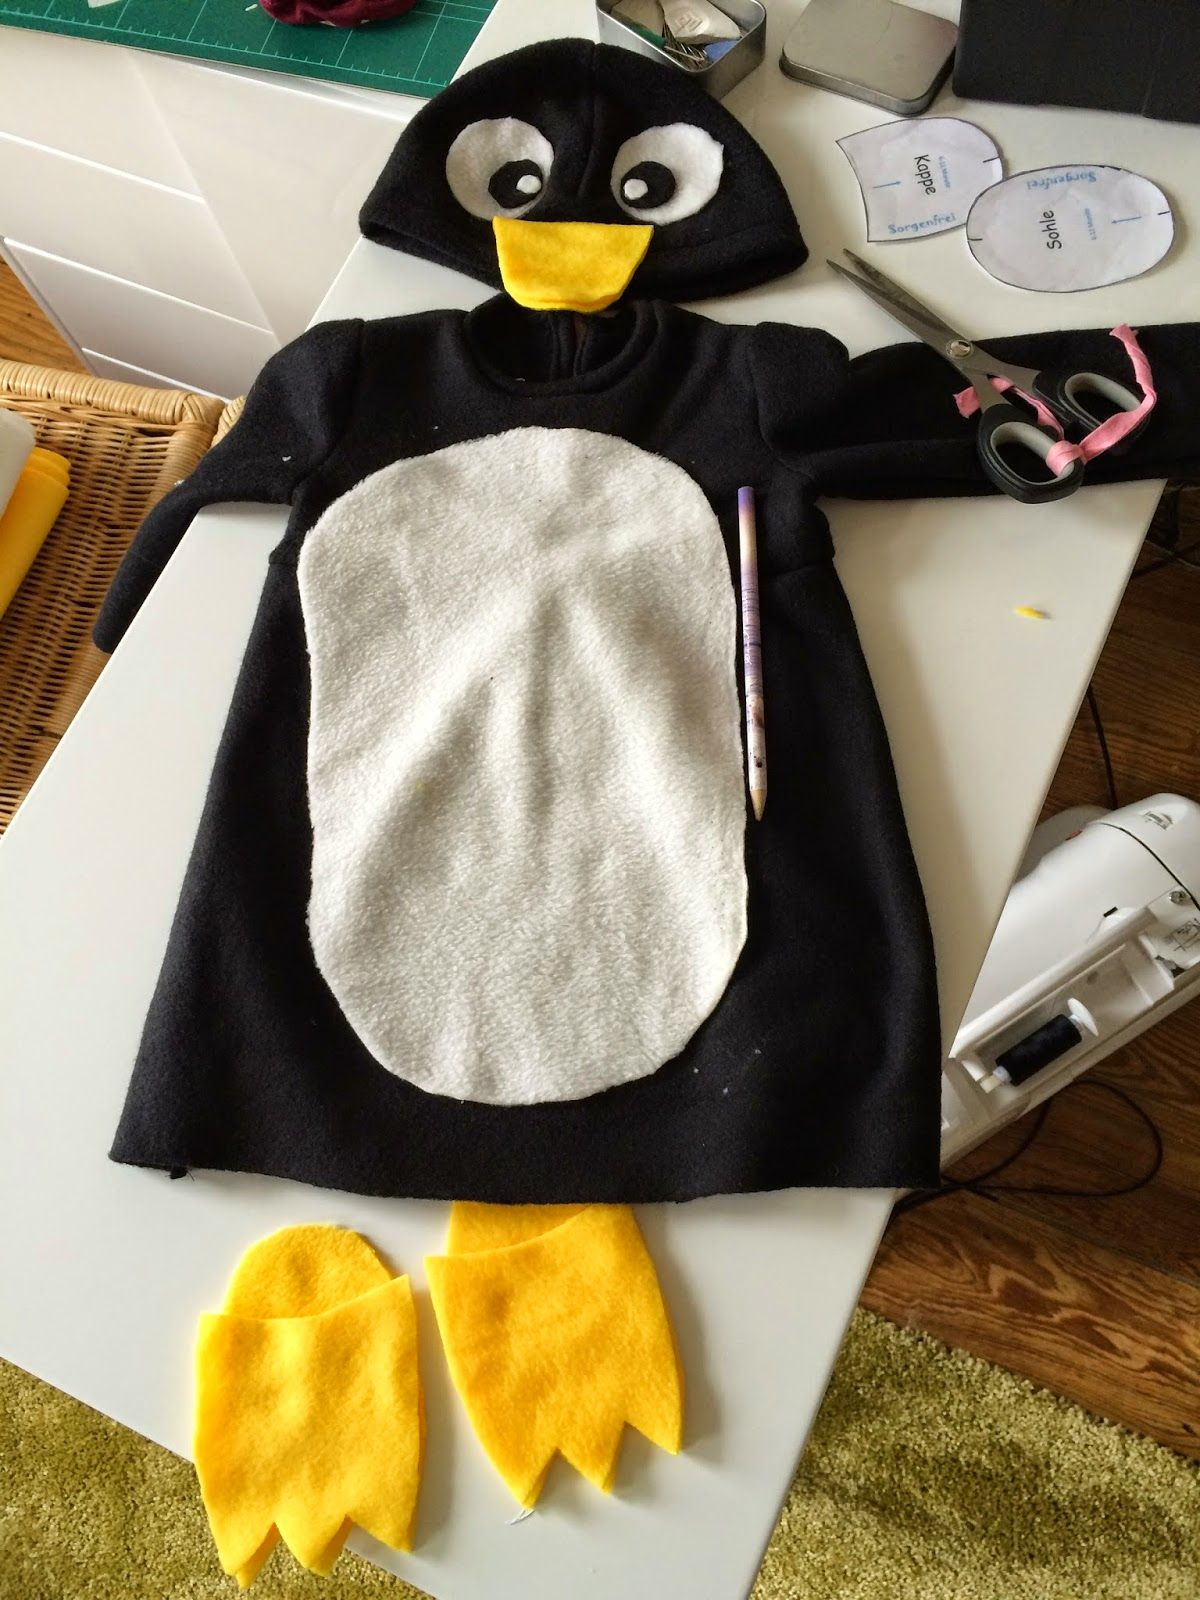 Pingouin Mary Poppins Pinguin Kostüm Selber Machen Penguin Pinguin Costume Penguin